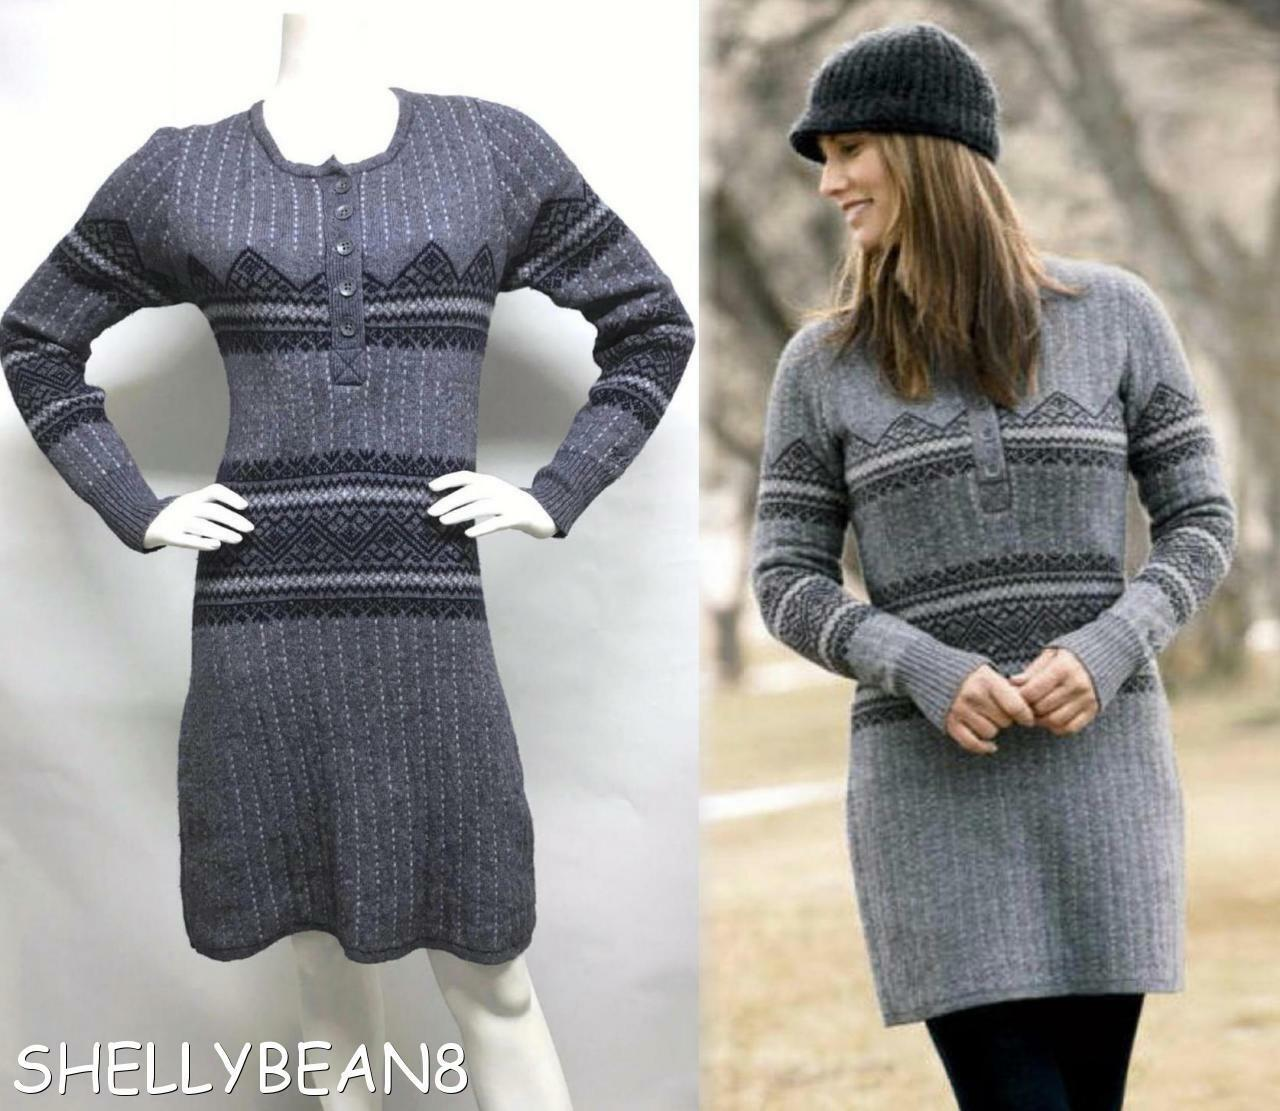 WOOLRICH Wool Blend FAIR ISLE Nordic Sweater DRESS Indigo Heather blueE S 4 6